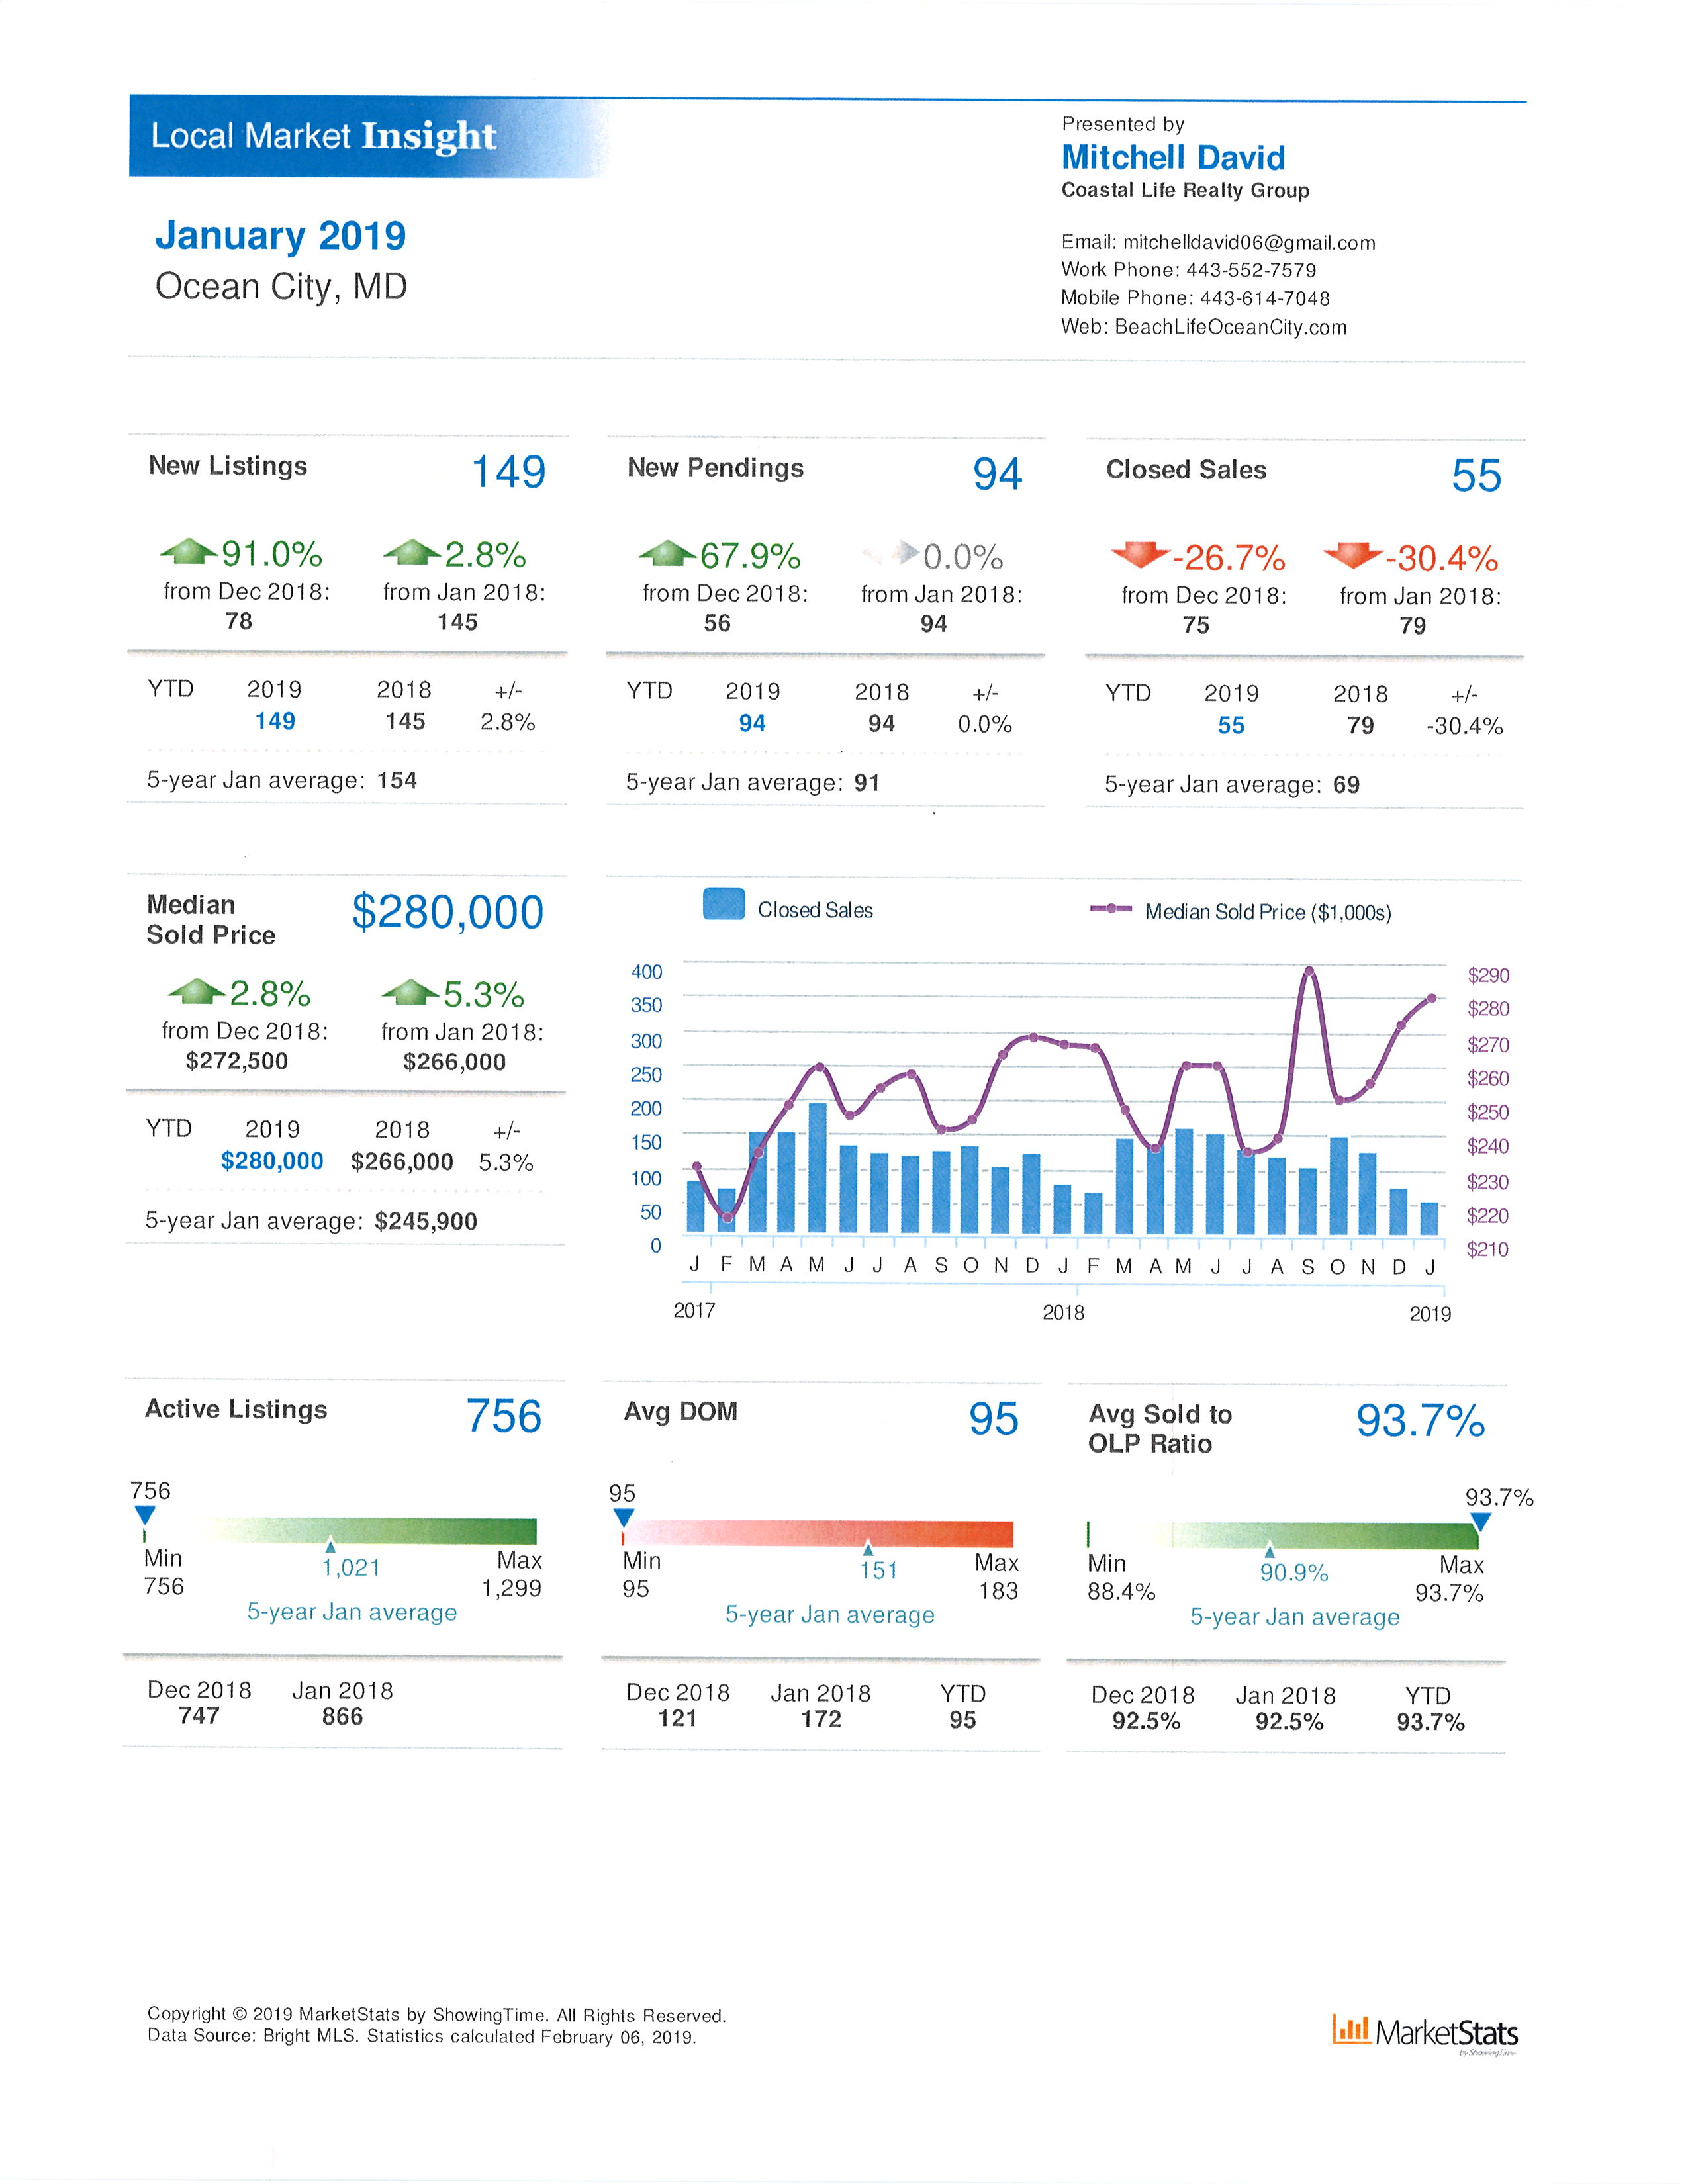 Local Market Insight Jan 2019